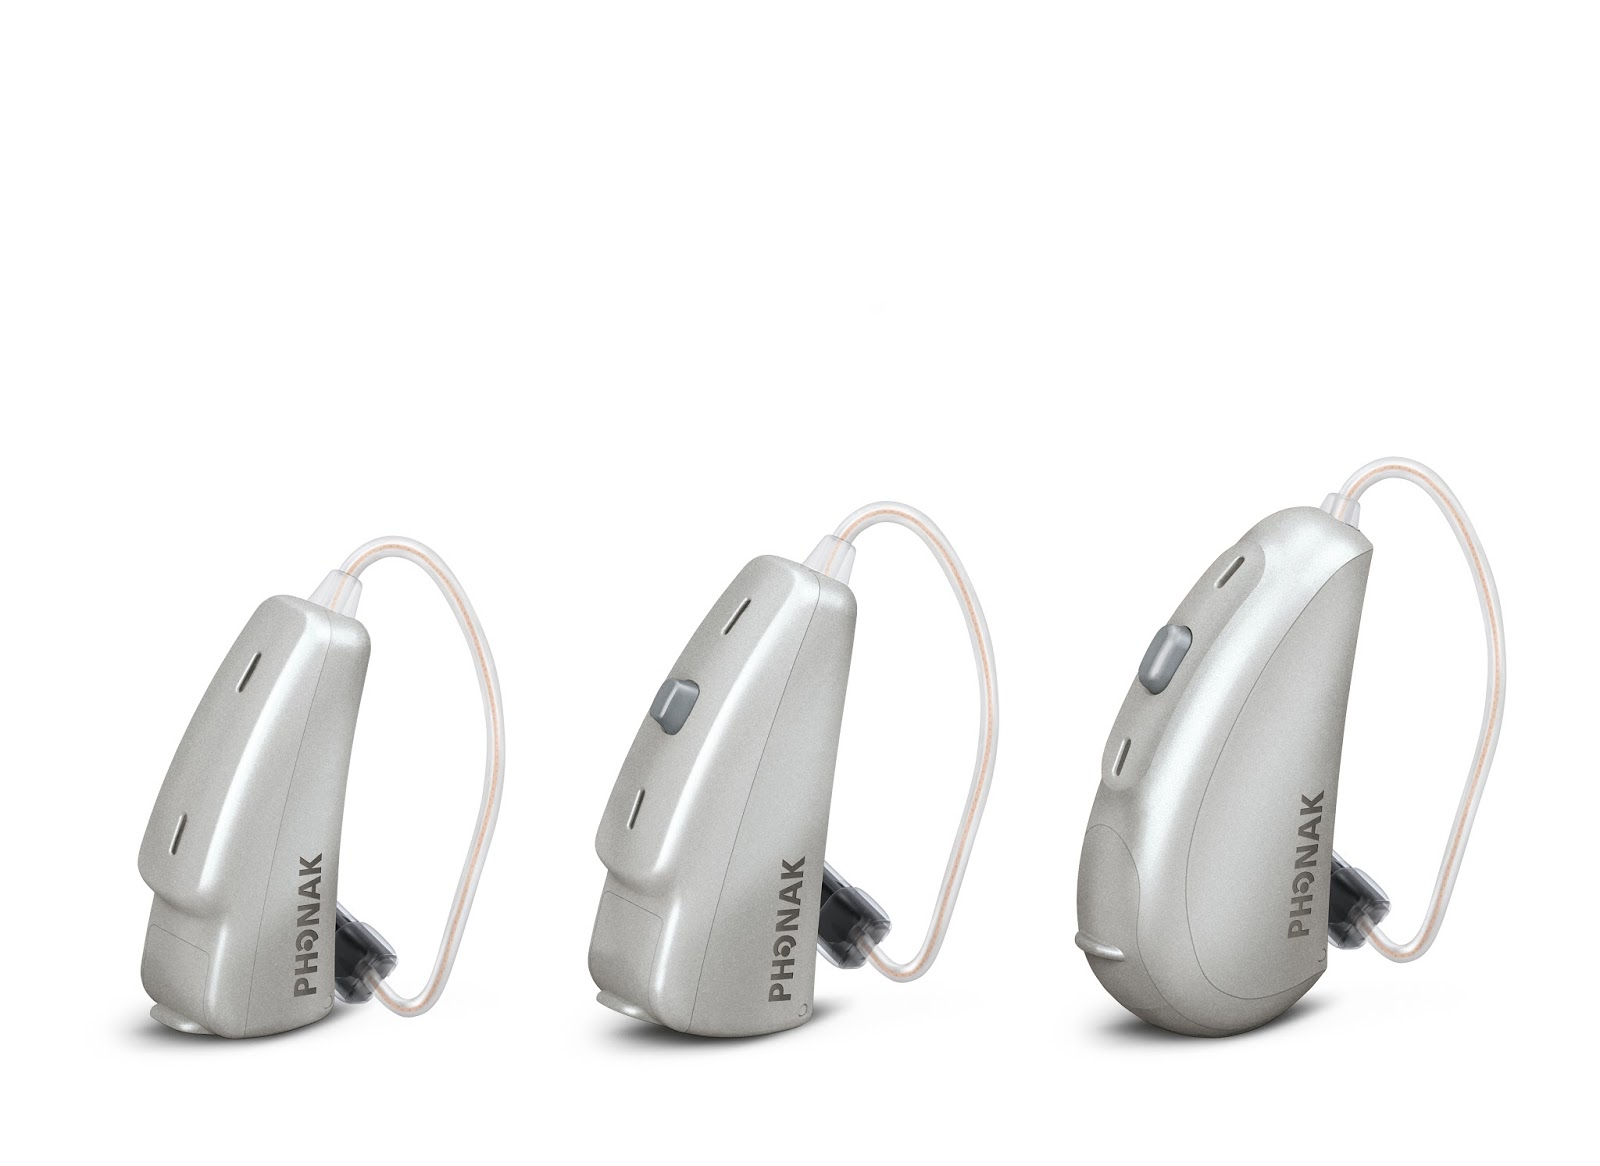 Phonak Audeo Q70